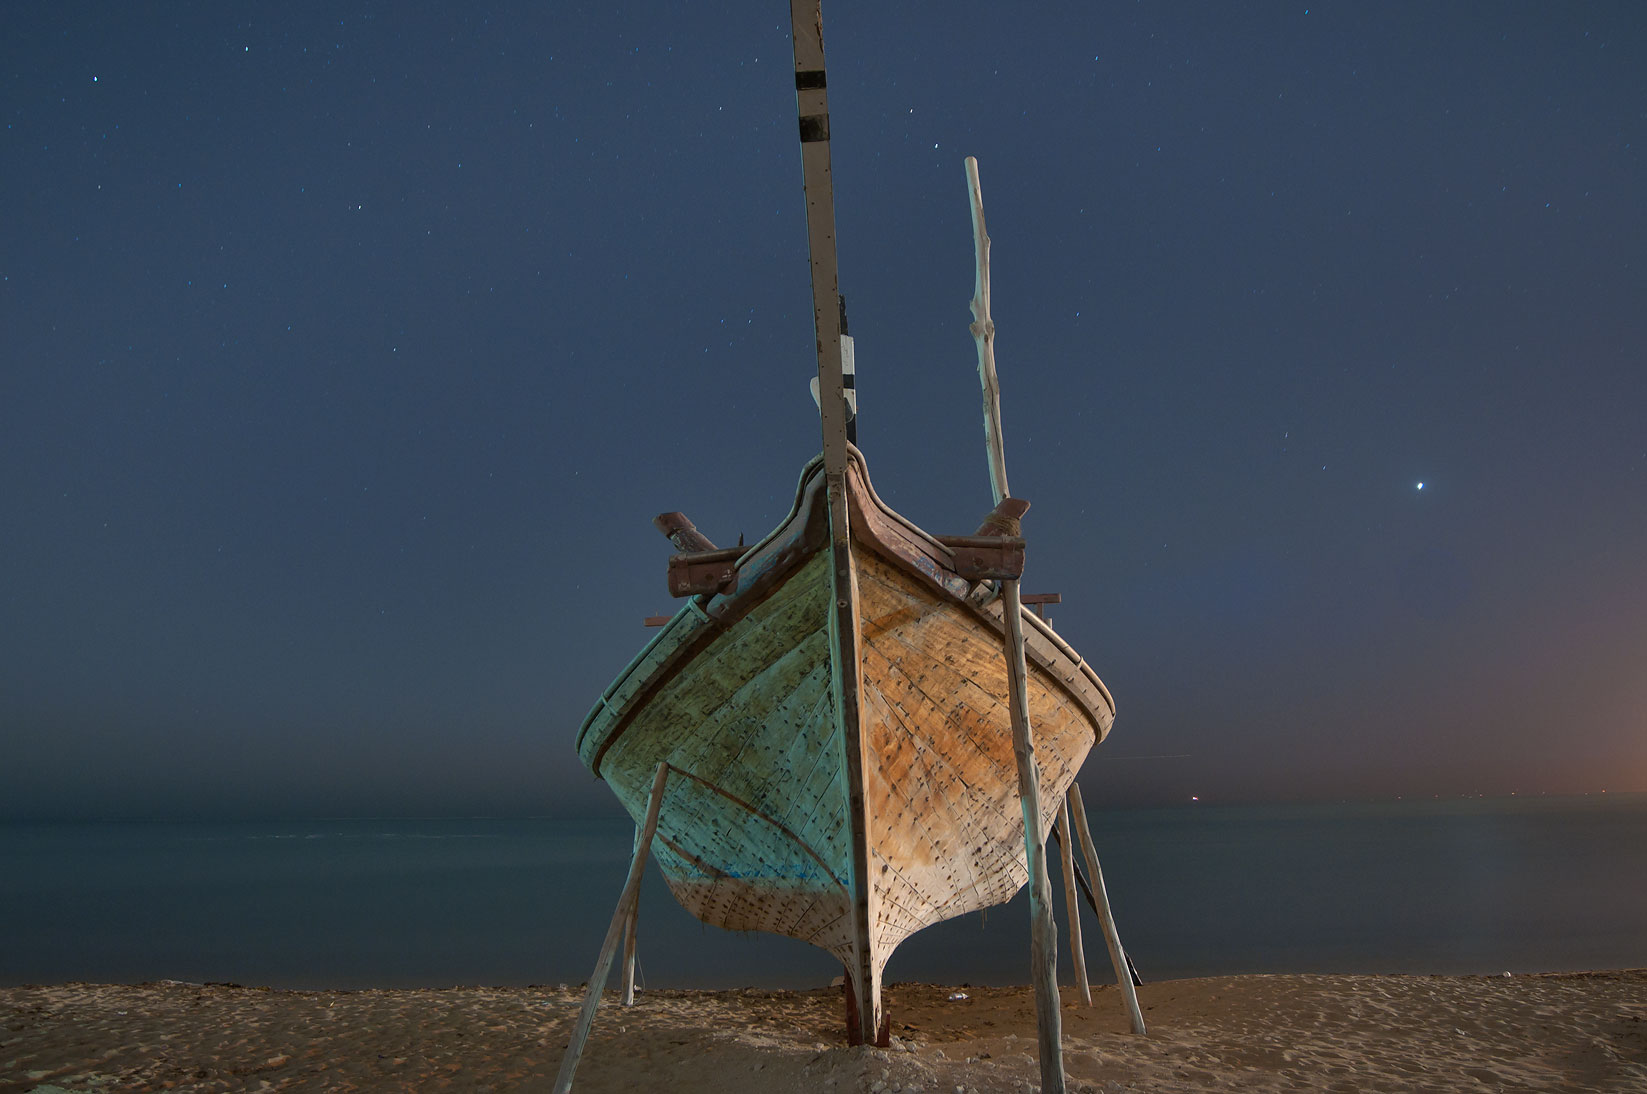 Hull of a fishing boat in heritage village. Al Wakrah, Qatar